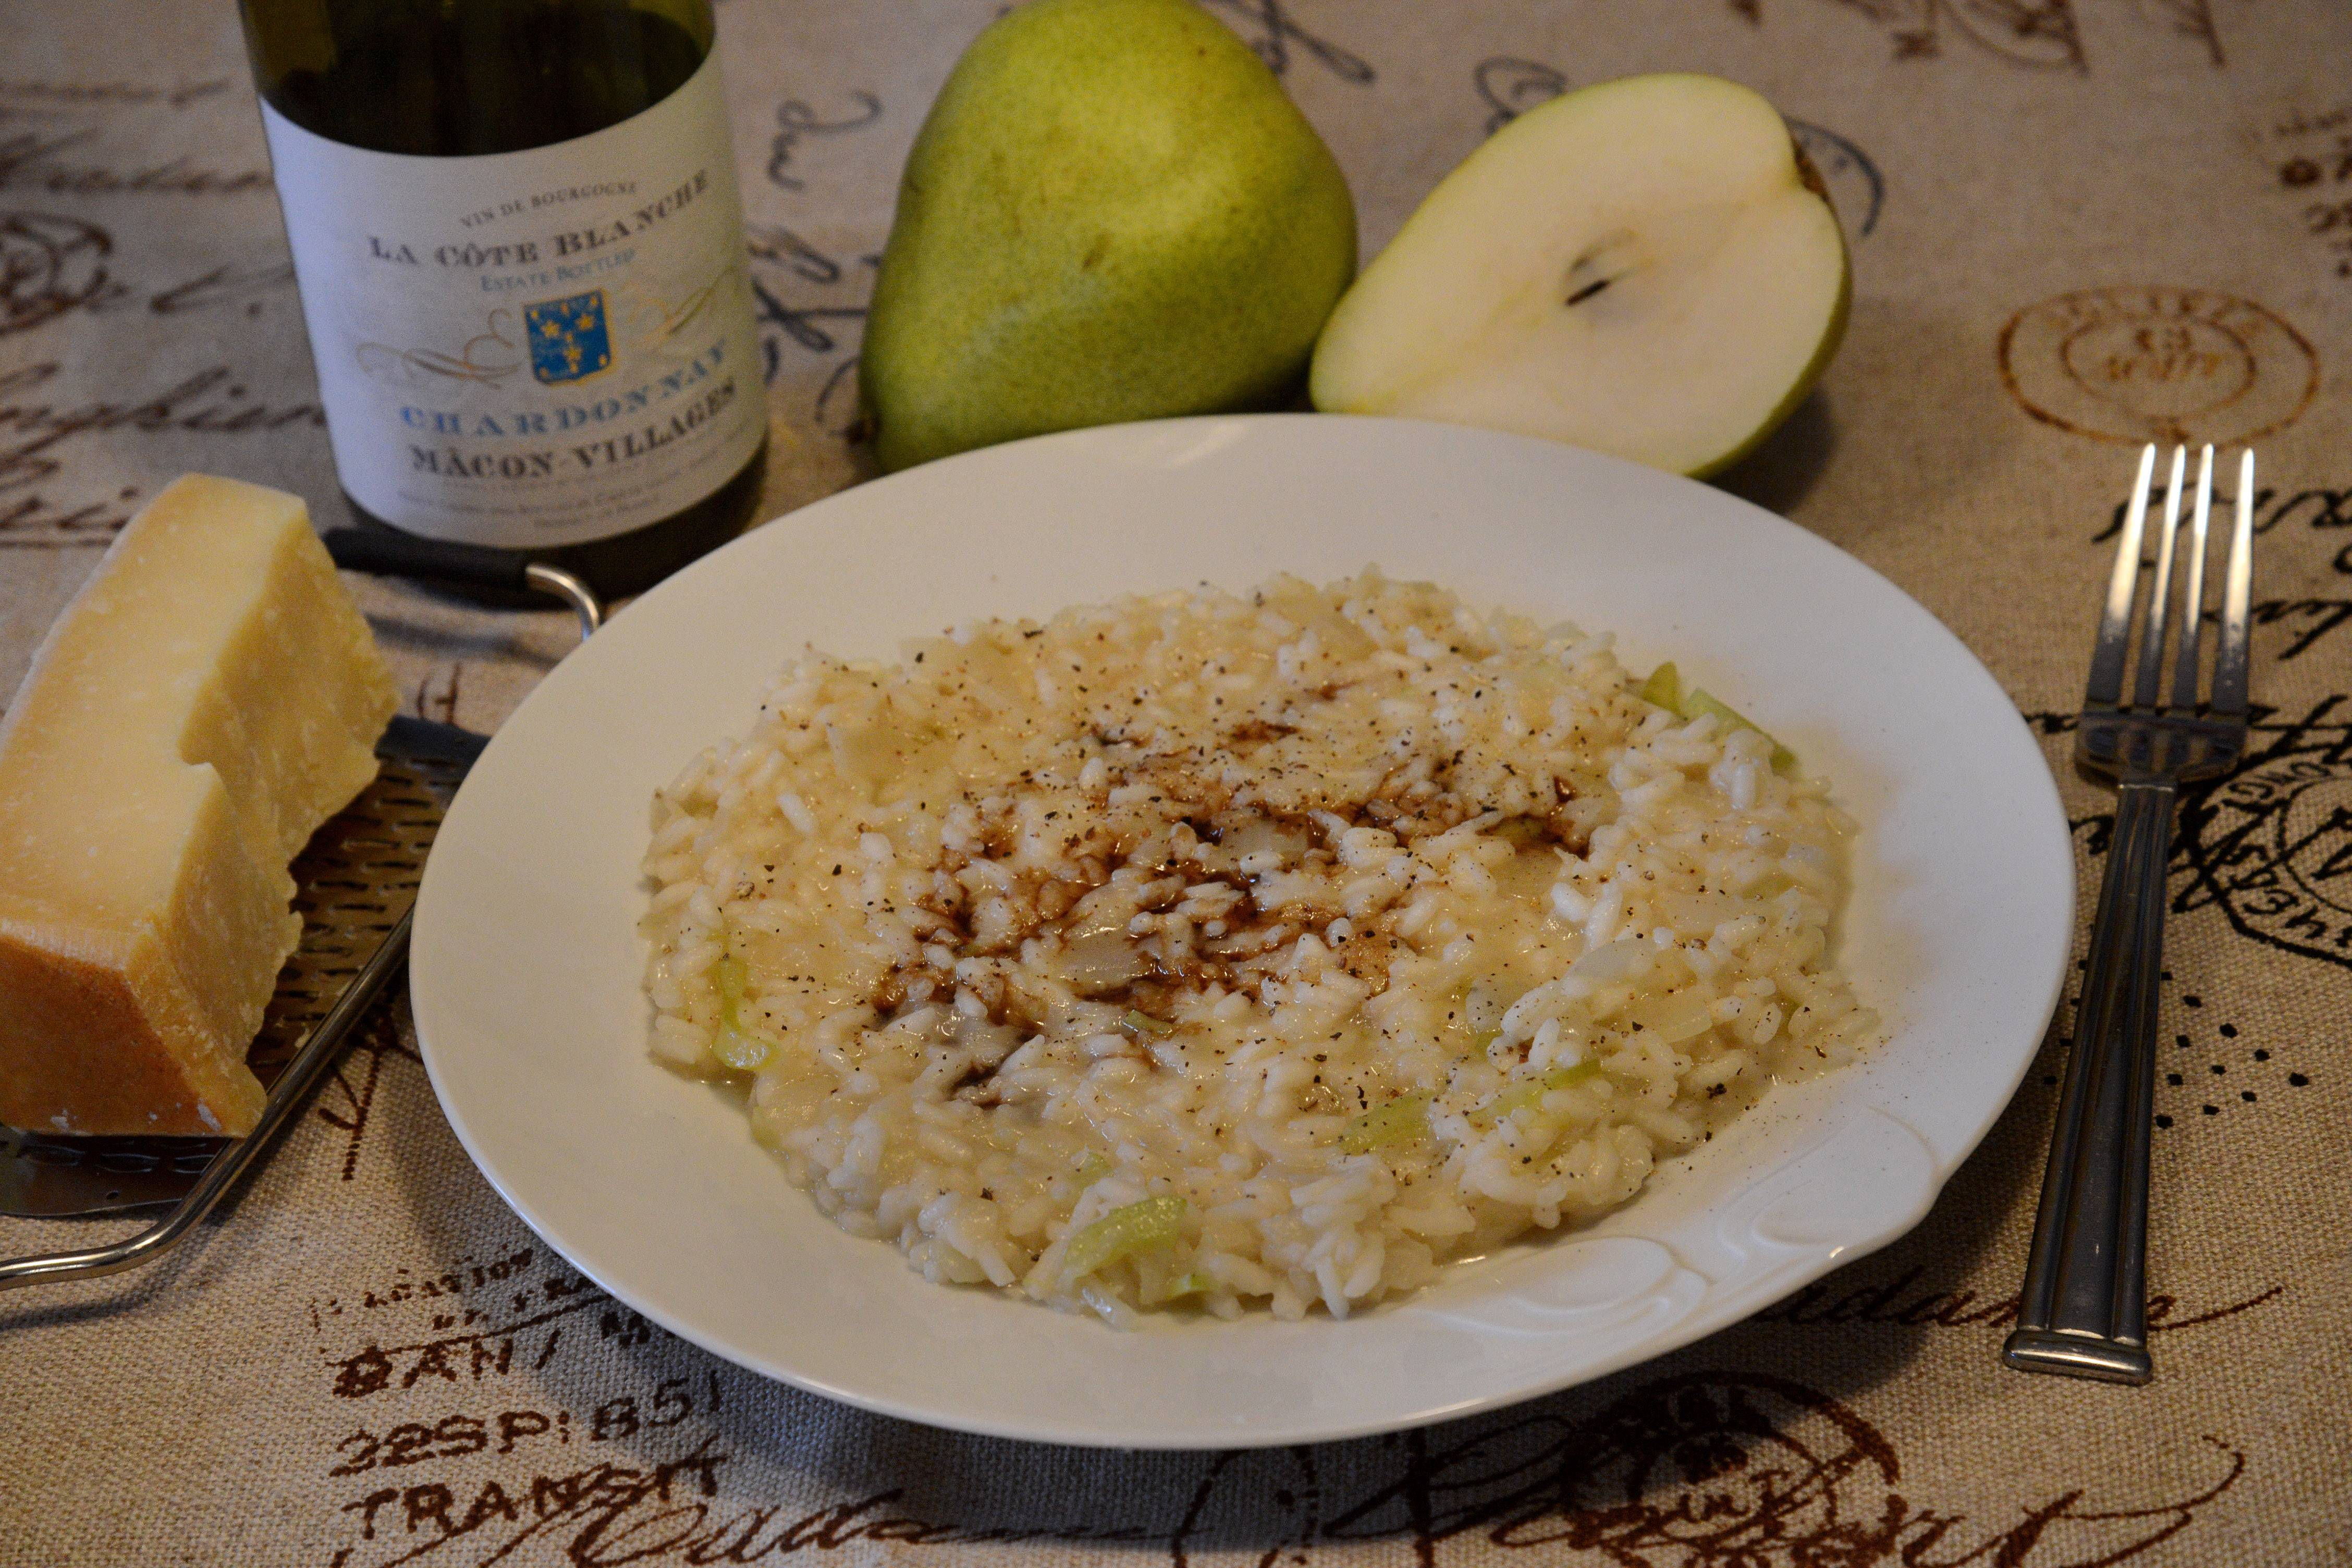 Pears and cracked pepper add a unique dimension to risotto as Penny Kazmier learned at a recent cooking class with Lidia Bastianich.